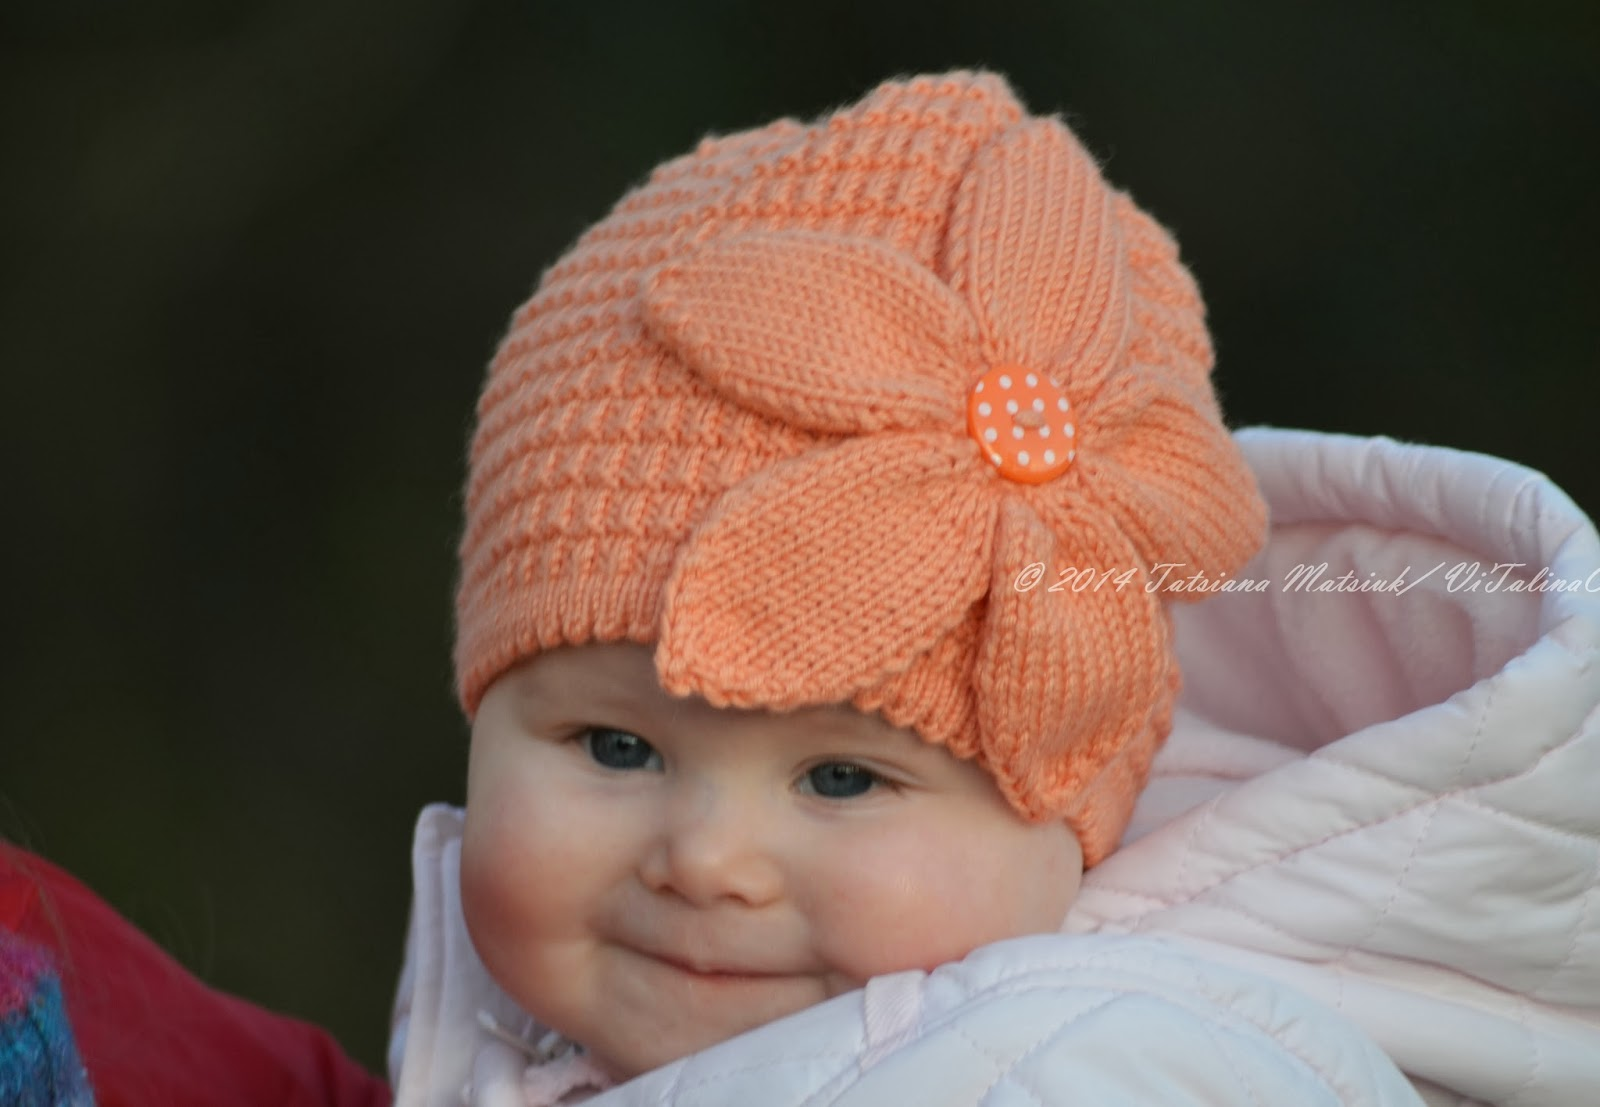 73c69a6b204 The hat is knitted with Baby Cashmere Merino Silk DK yarn by Sublime in  orange color shade 0198. The yarn looks great and feels really soft when  knitting.